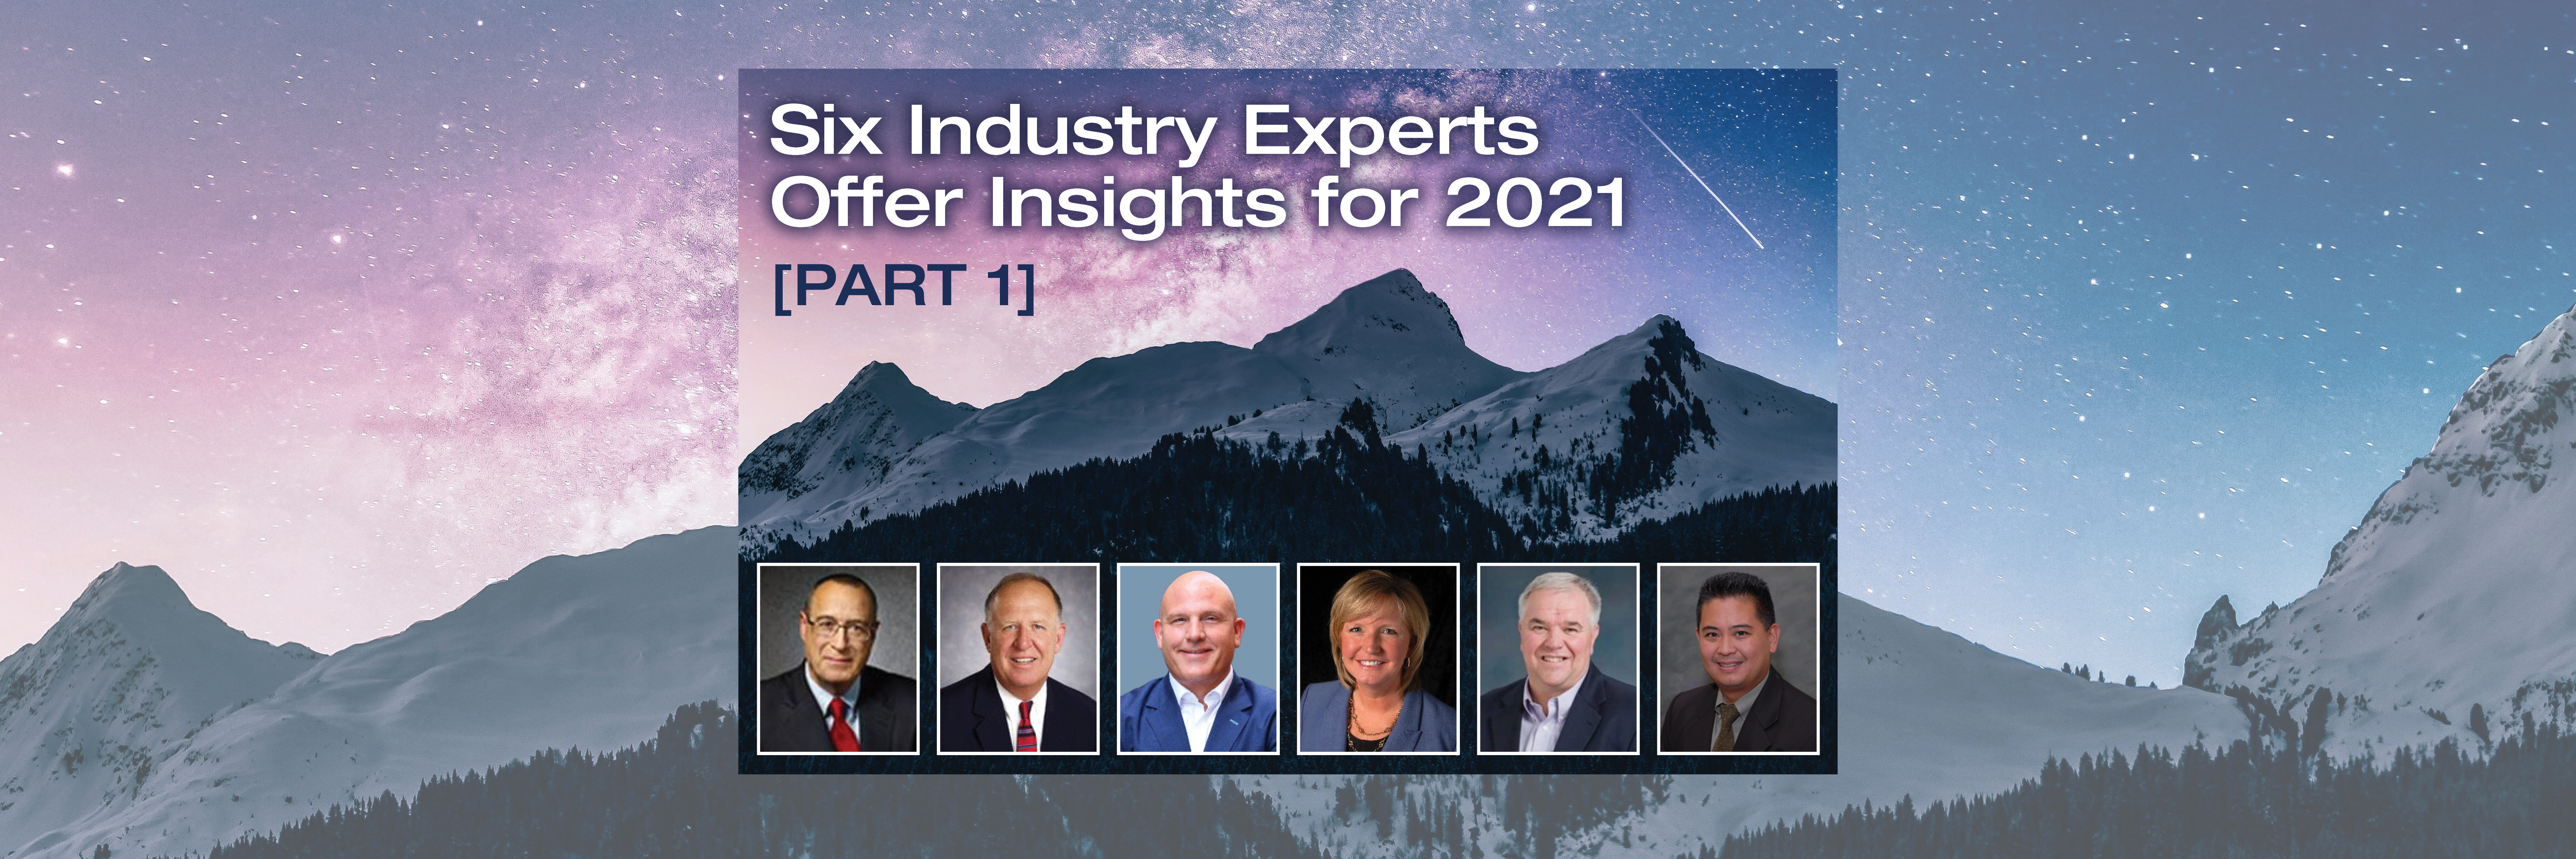 Six Industry Experts Offer Insights for 2021